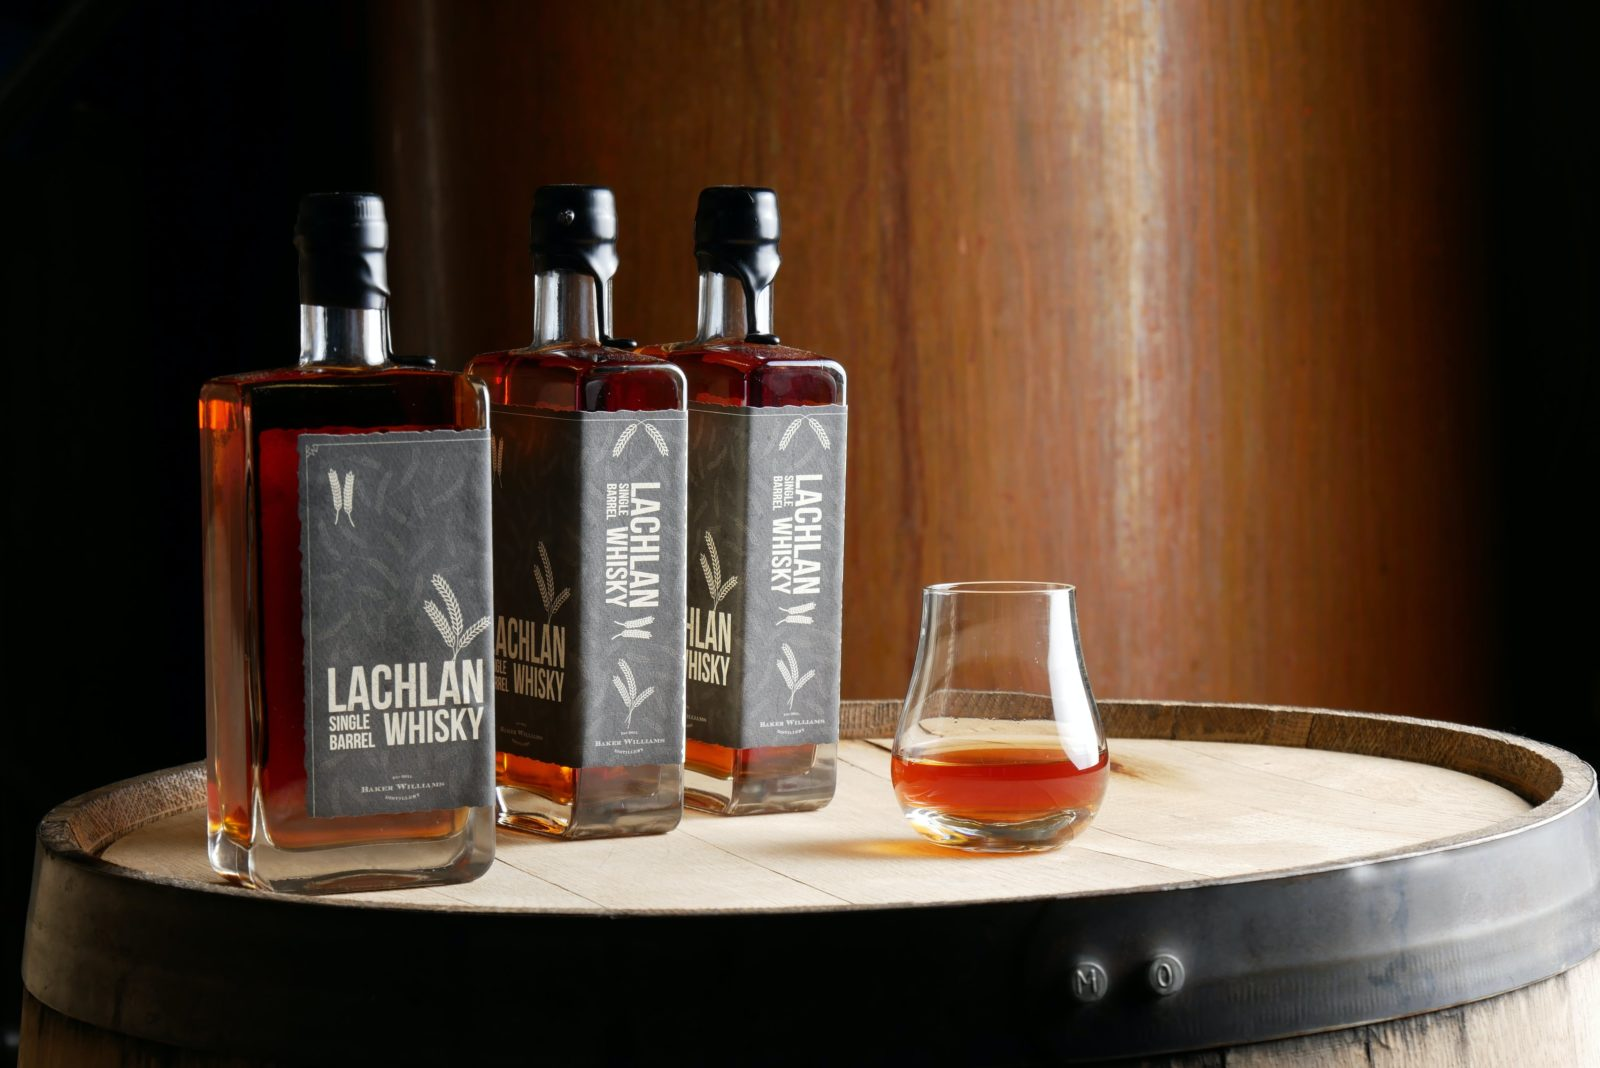 Baker Williams Lachlan Whisky